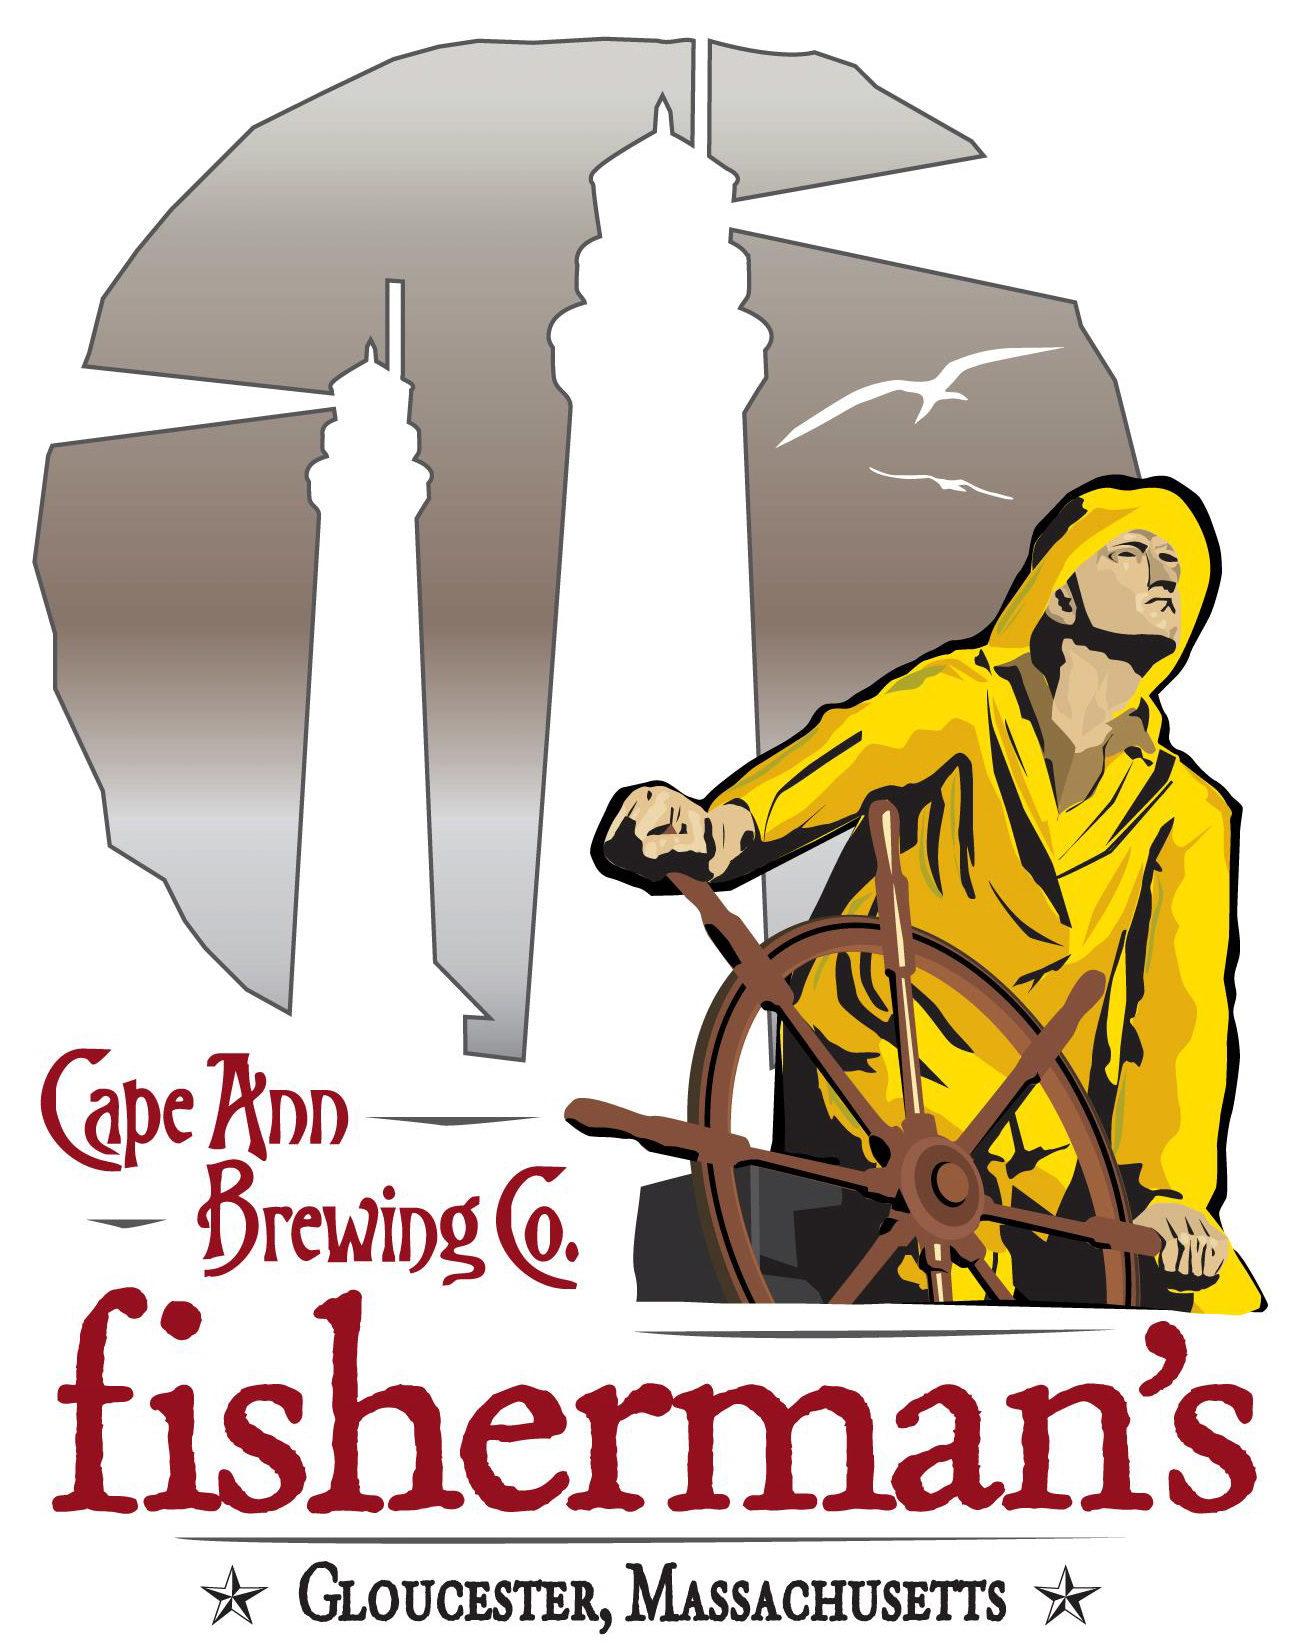 Dedicated to the spirit and courage of fisherman in the North Atlantic, Cape Ann Brewing Company is a small craft brewery with a big heart